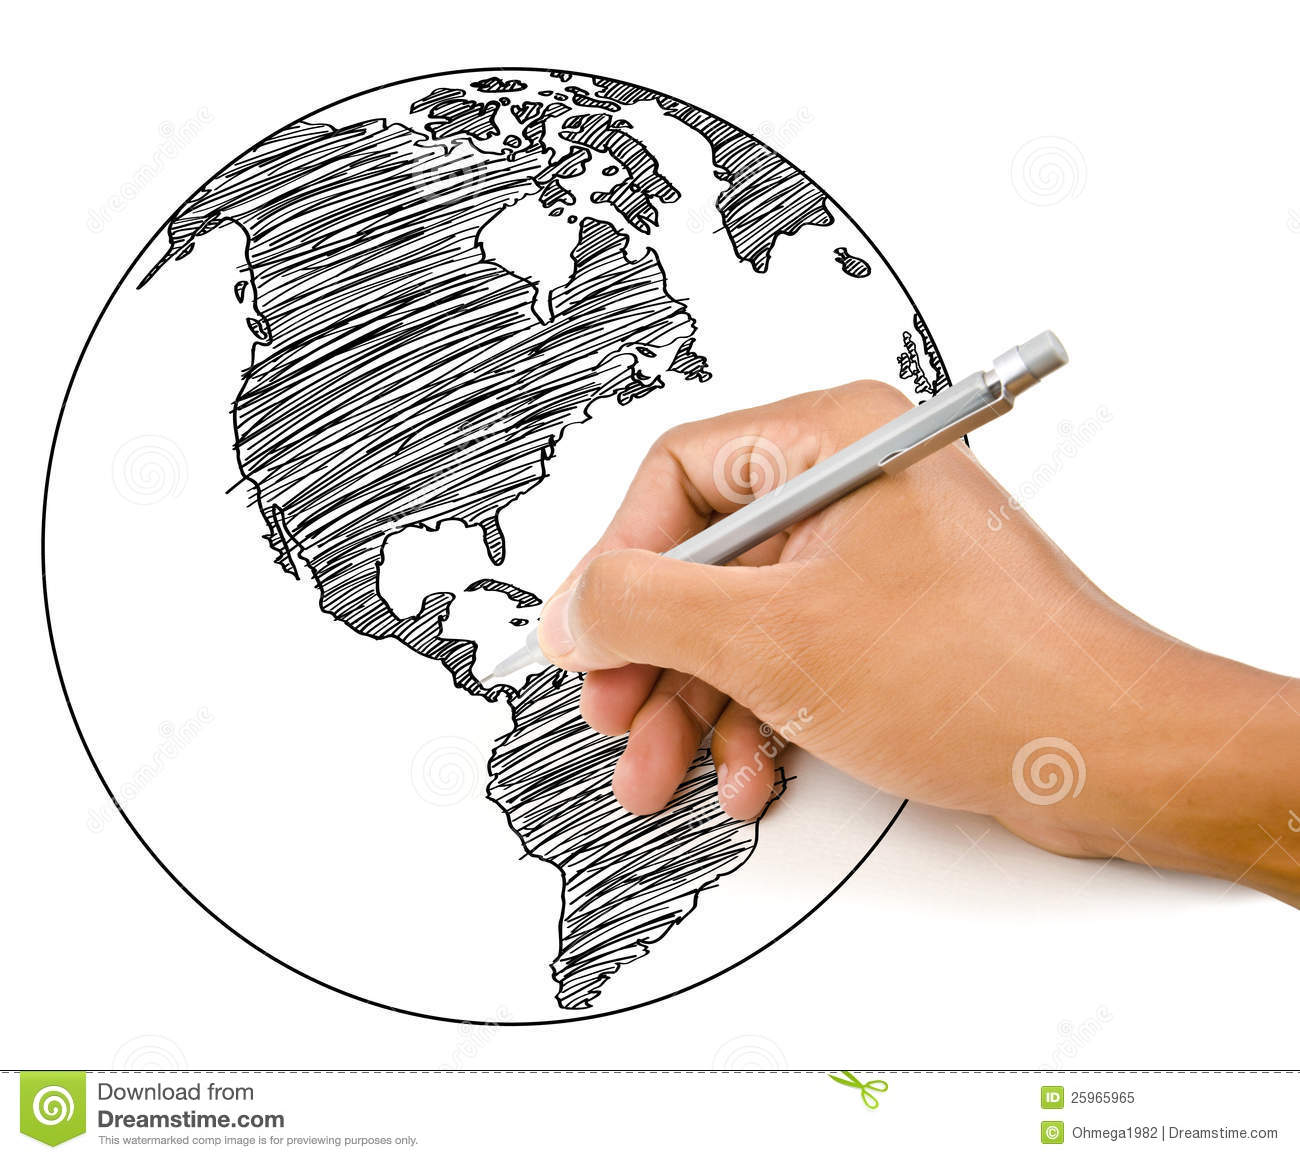 Hand drawing world map globe line stock illustration illustration hand drawing world map globe line gumiabroncs Image collections